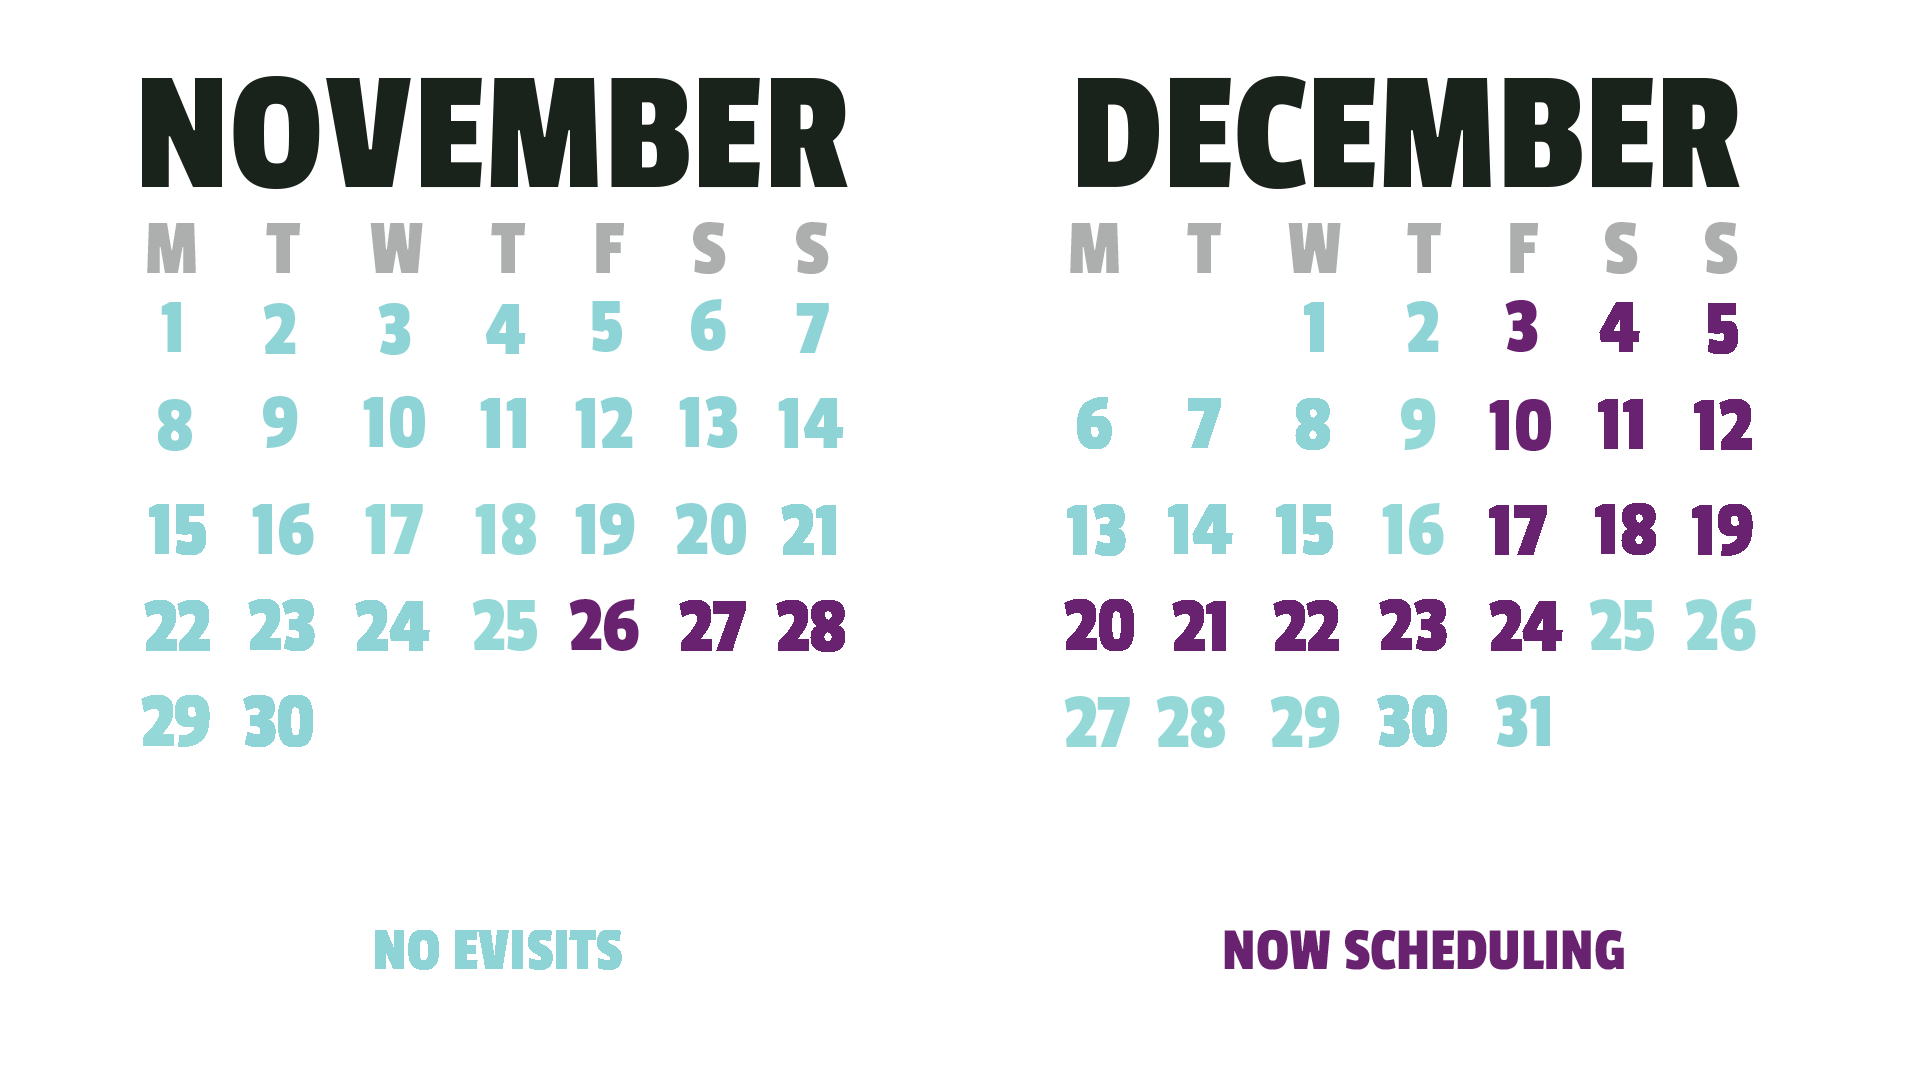 Calendar of availability to have a Virtual Visit with Santa Claus.